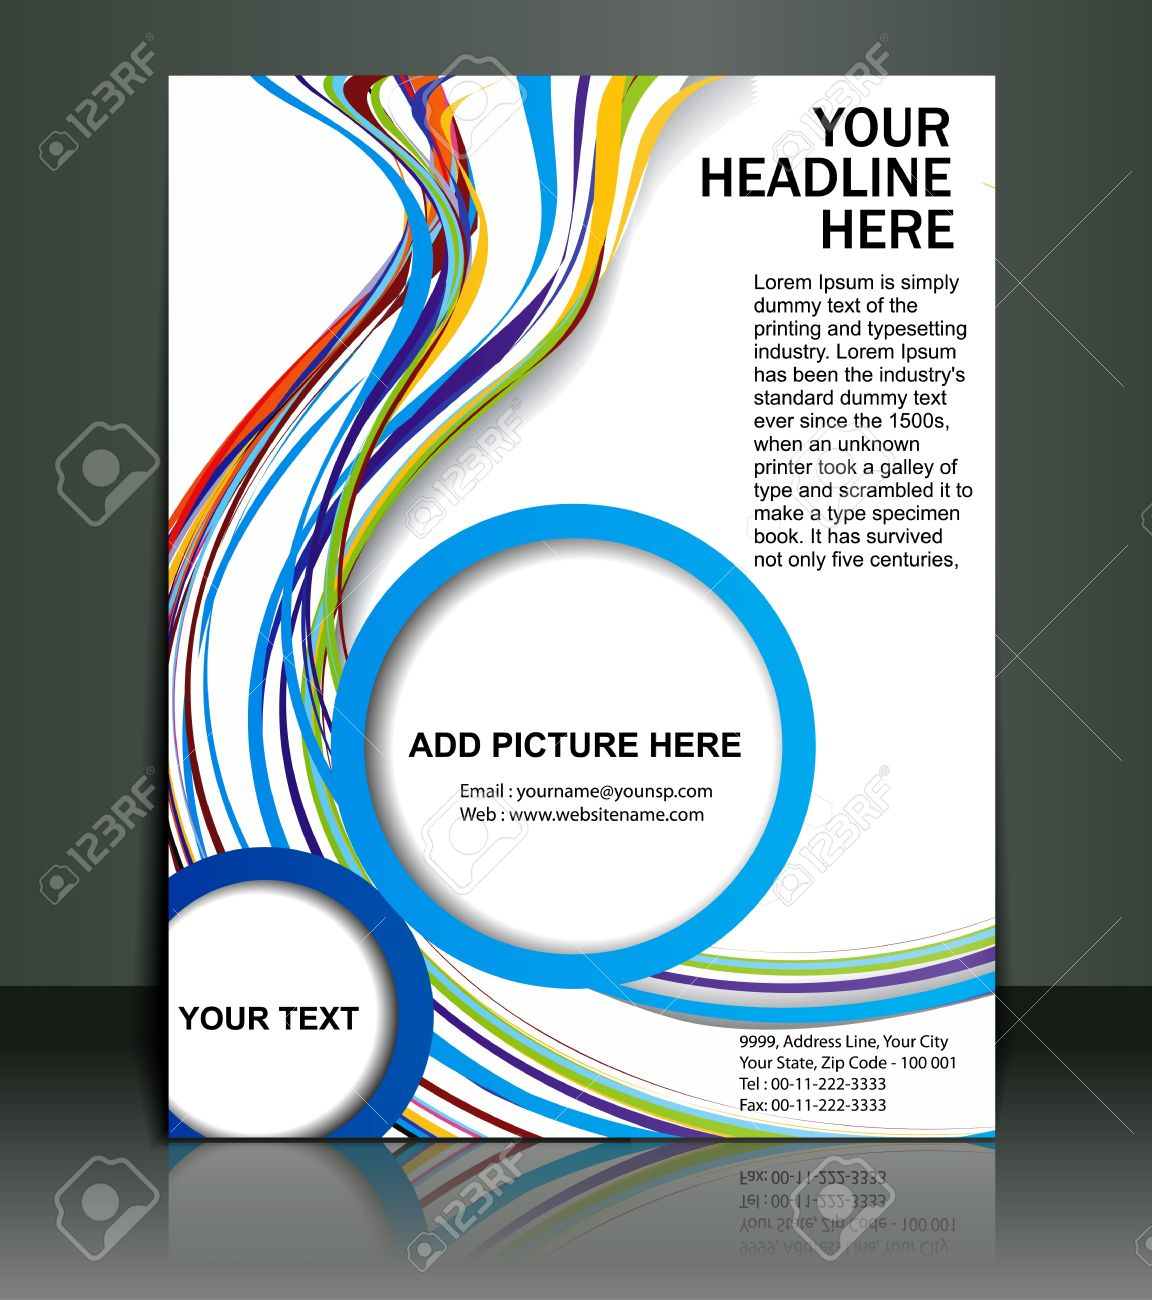 Poster design vector - Vector Editable Presentation Of Flyer Poster Design Content Background Stock Vector 10054957